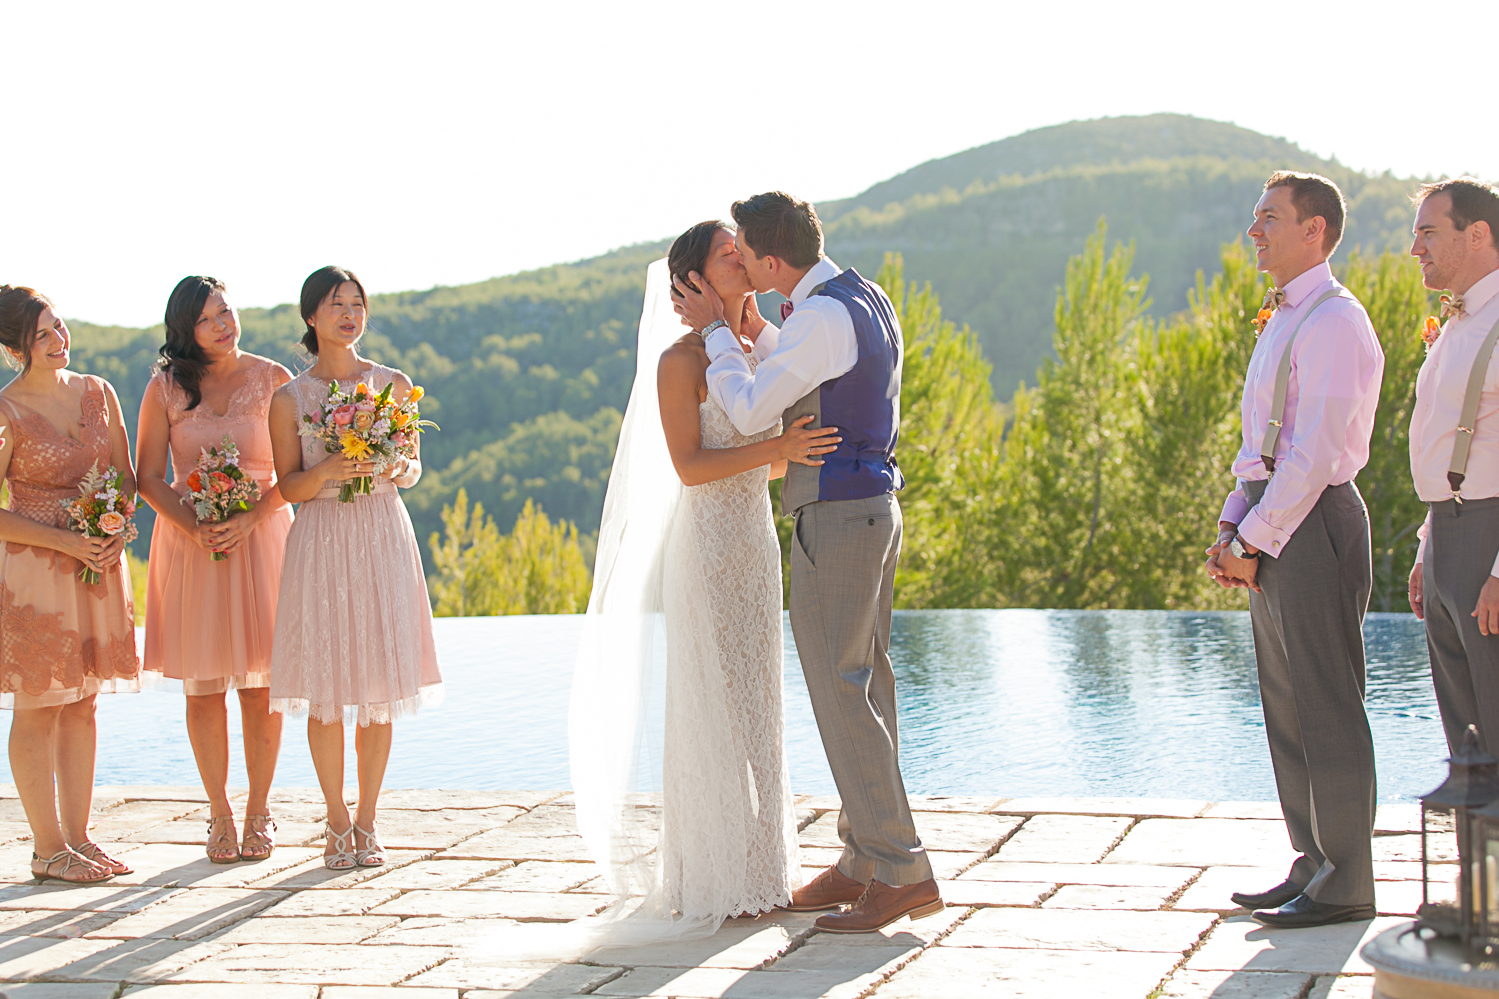 First Kiss at Villa Casanova, sitges Spain wedding